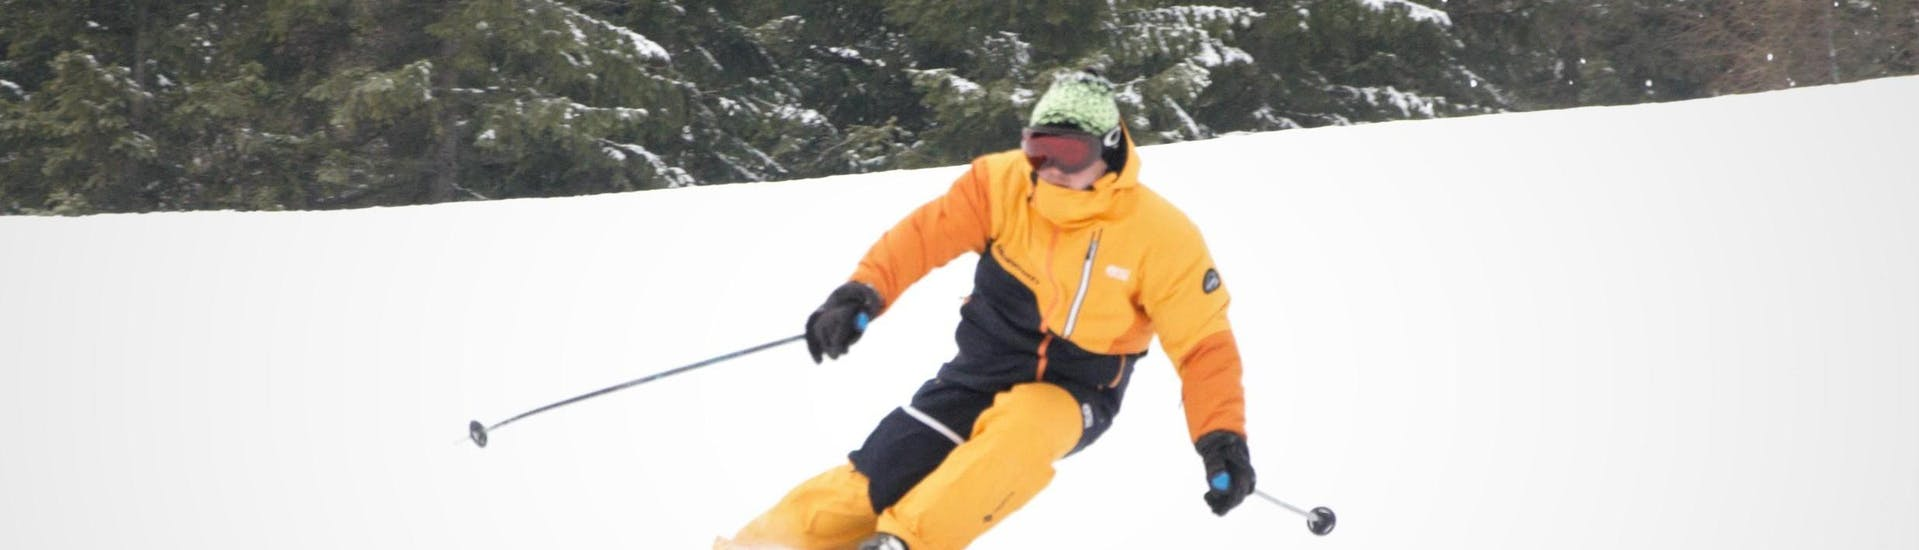 private-ski-lessons-for-adults-all-levels-snowmonkey-hero1